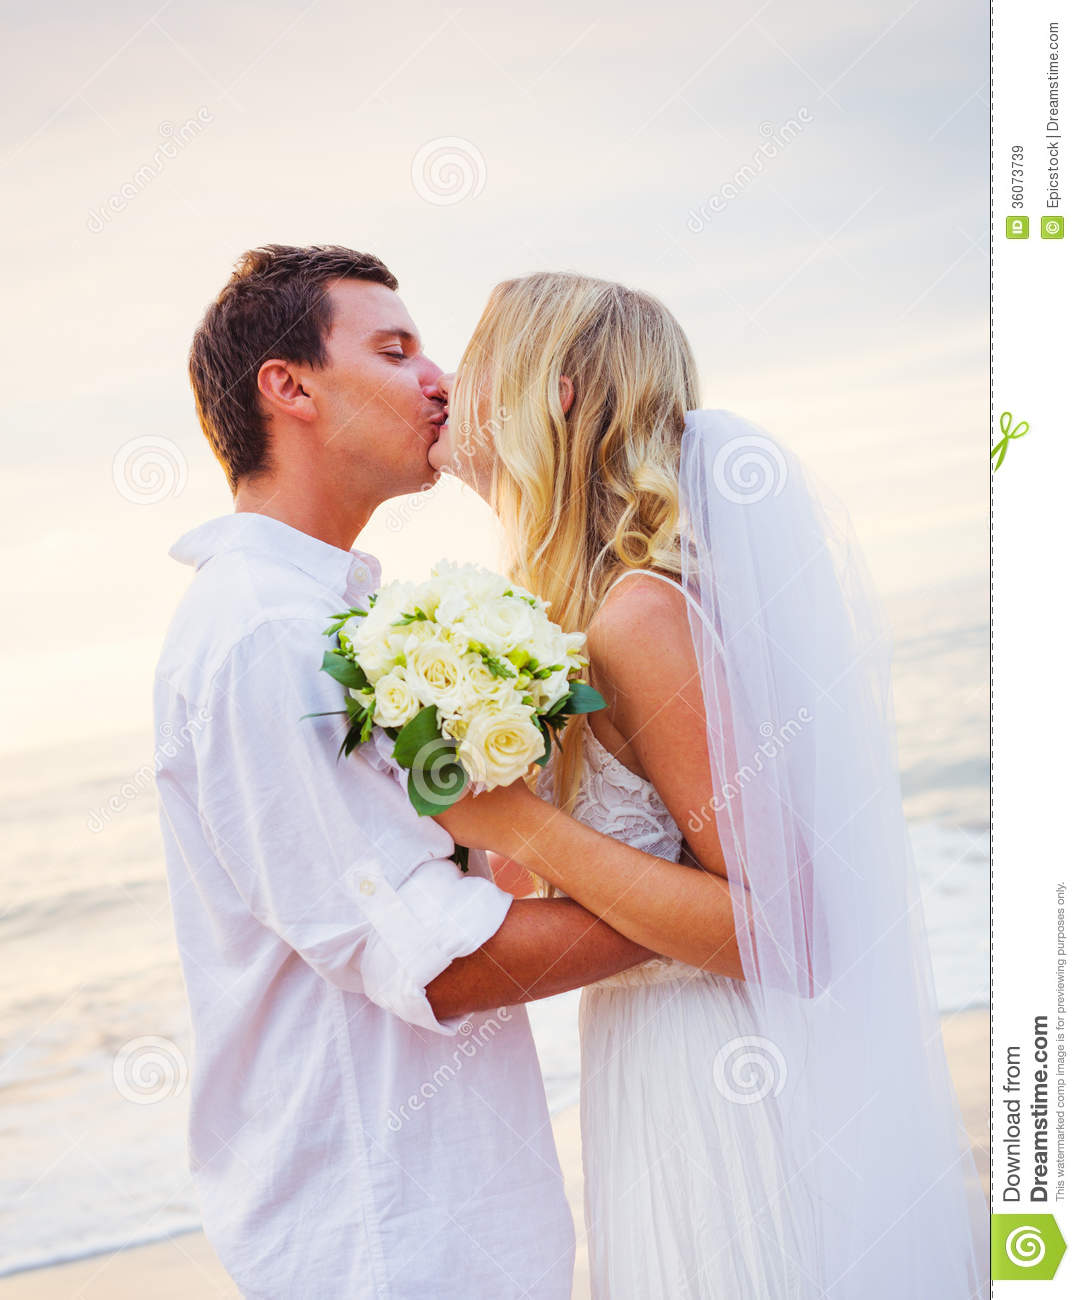 ... and Groom, Romantic Newly Married Couple Holding Hands, Just Married